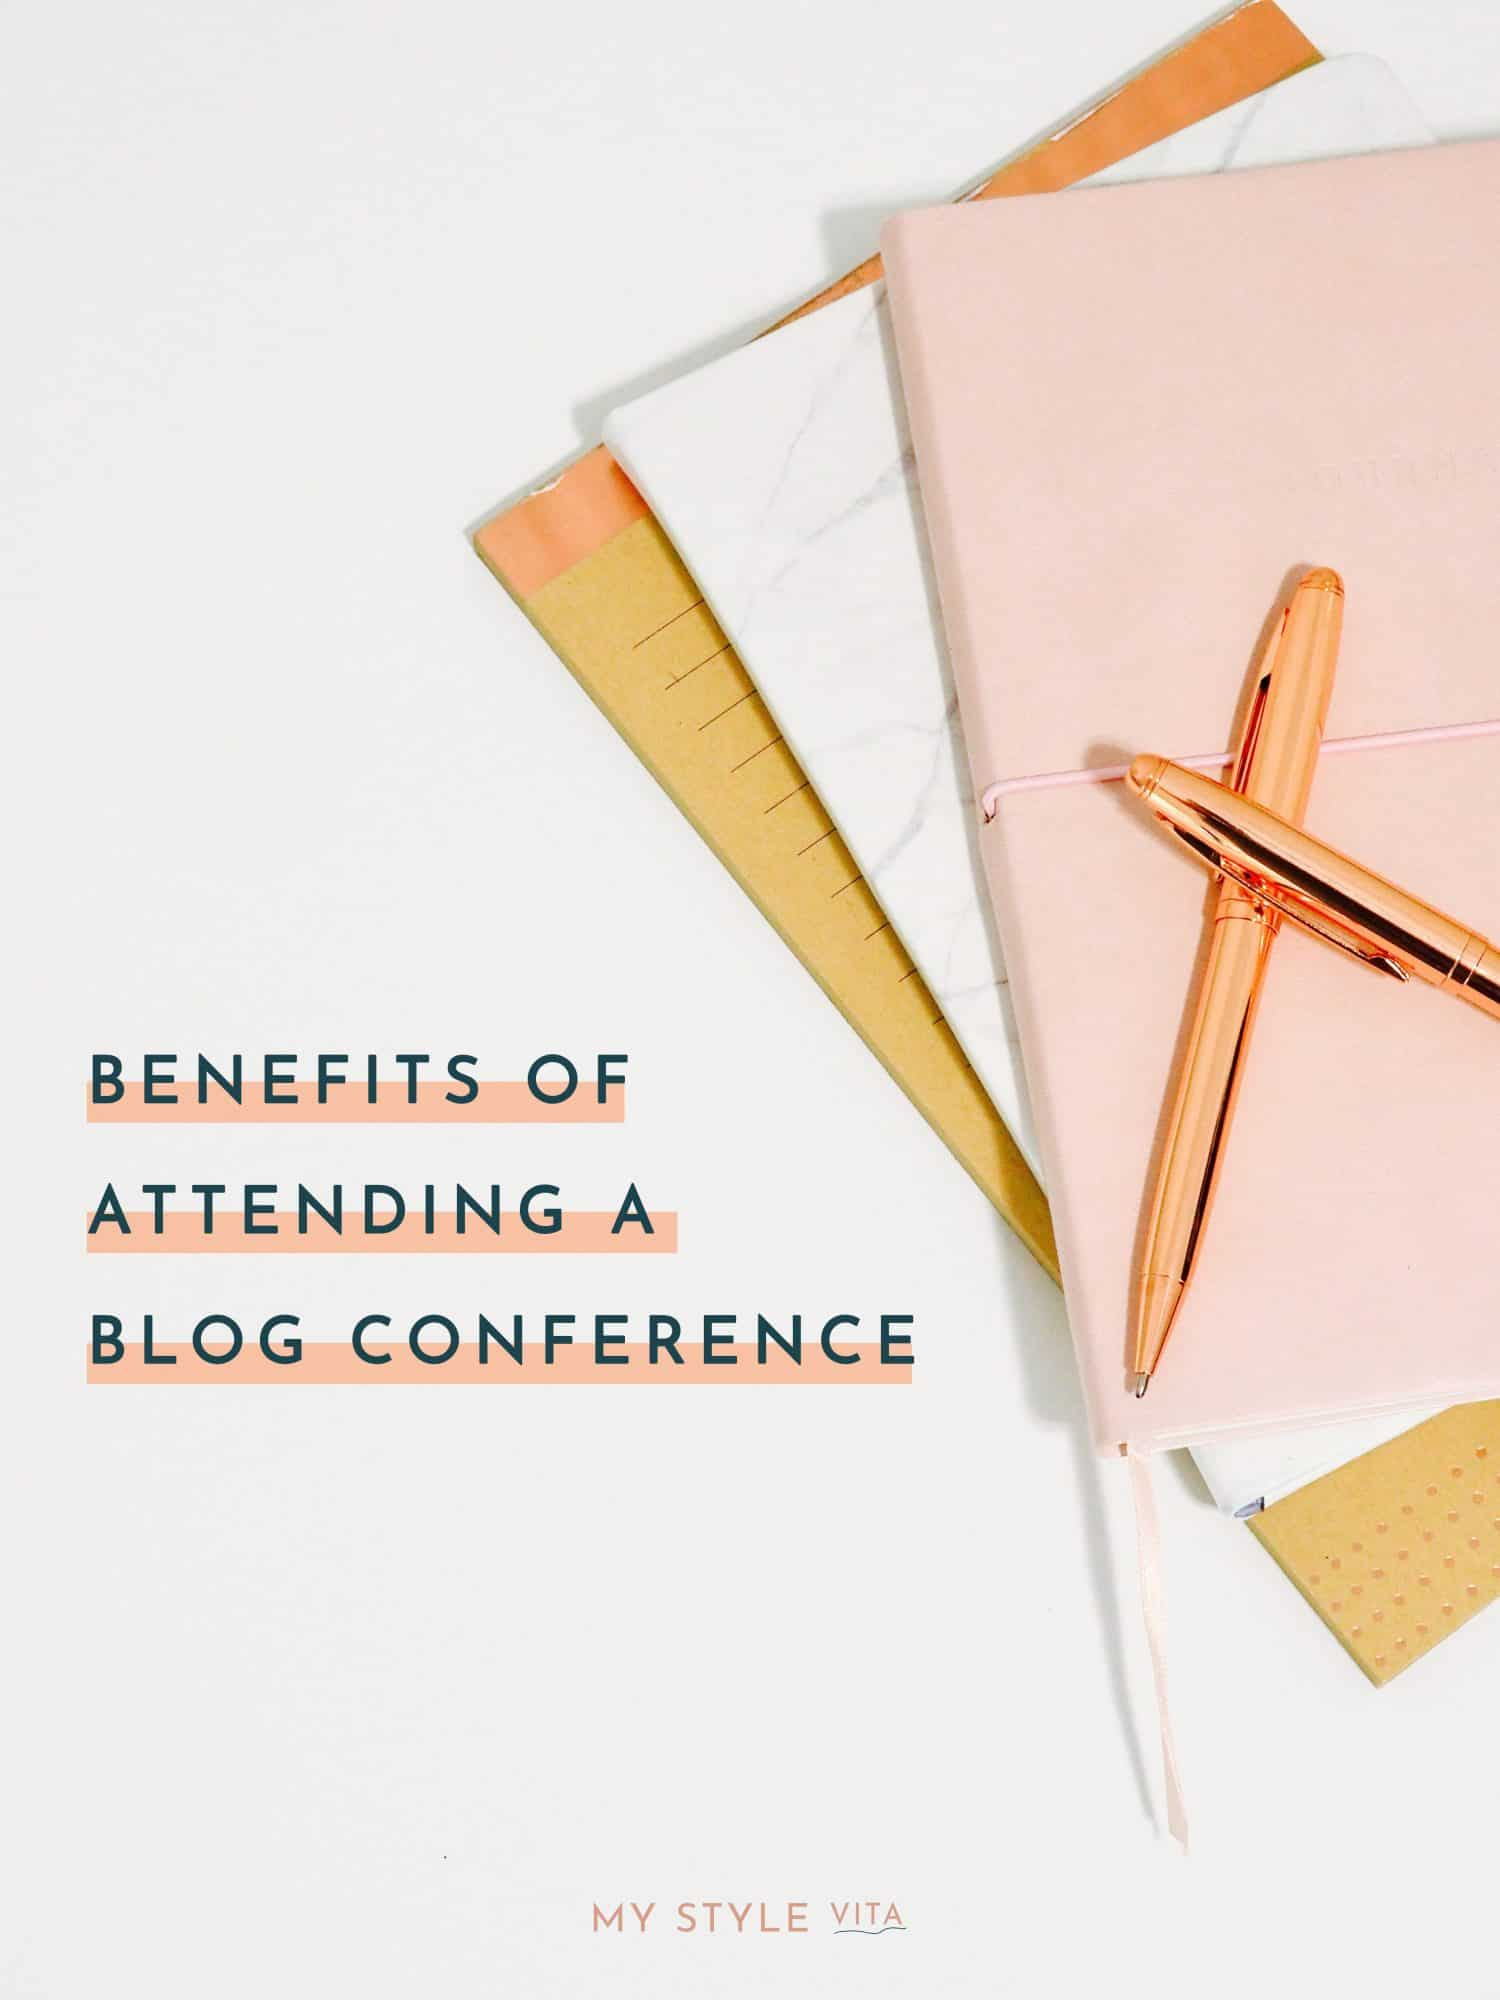 Benefits of attending a blog conference